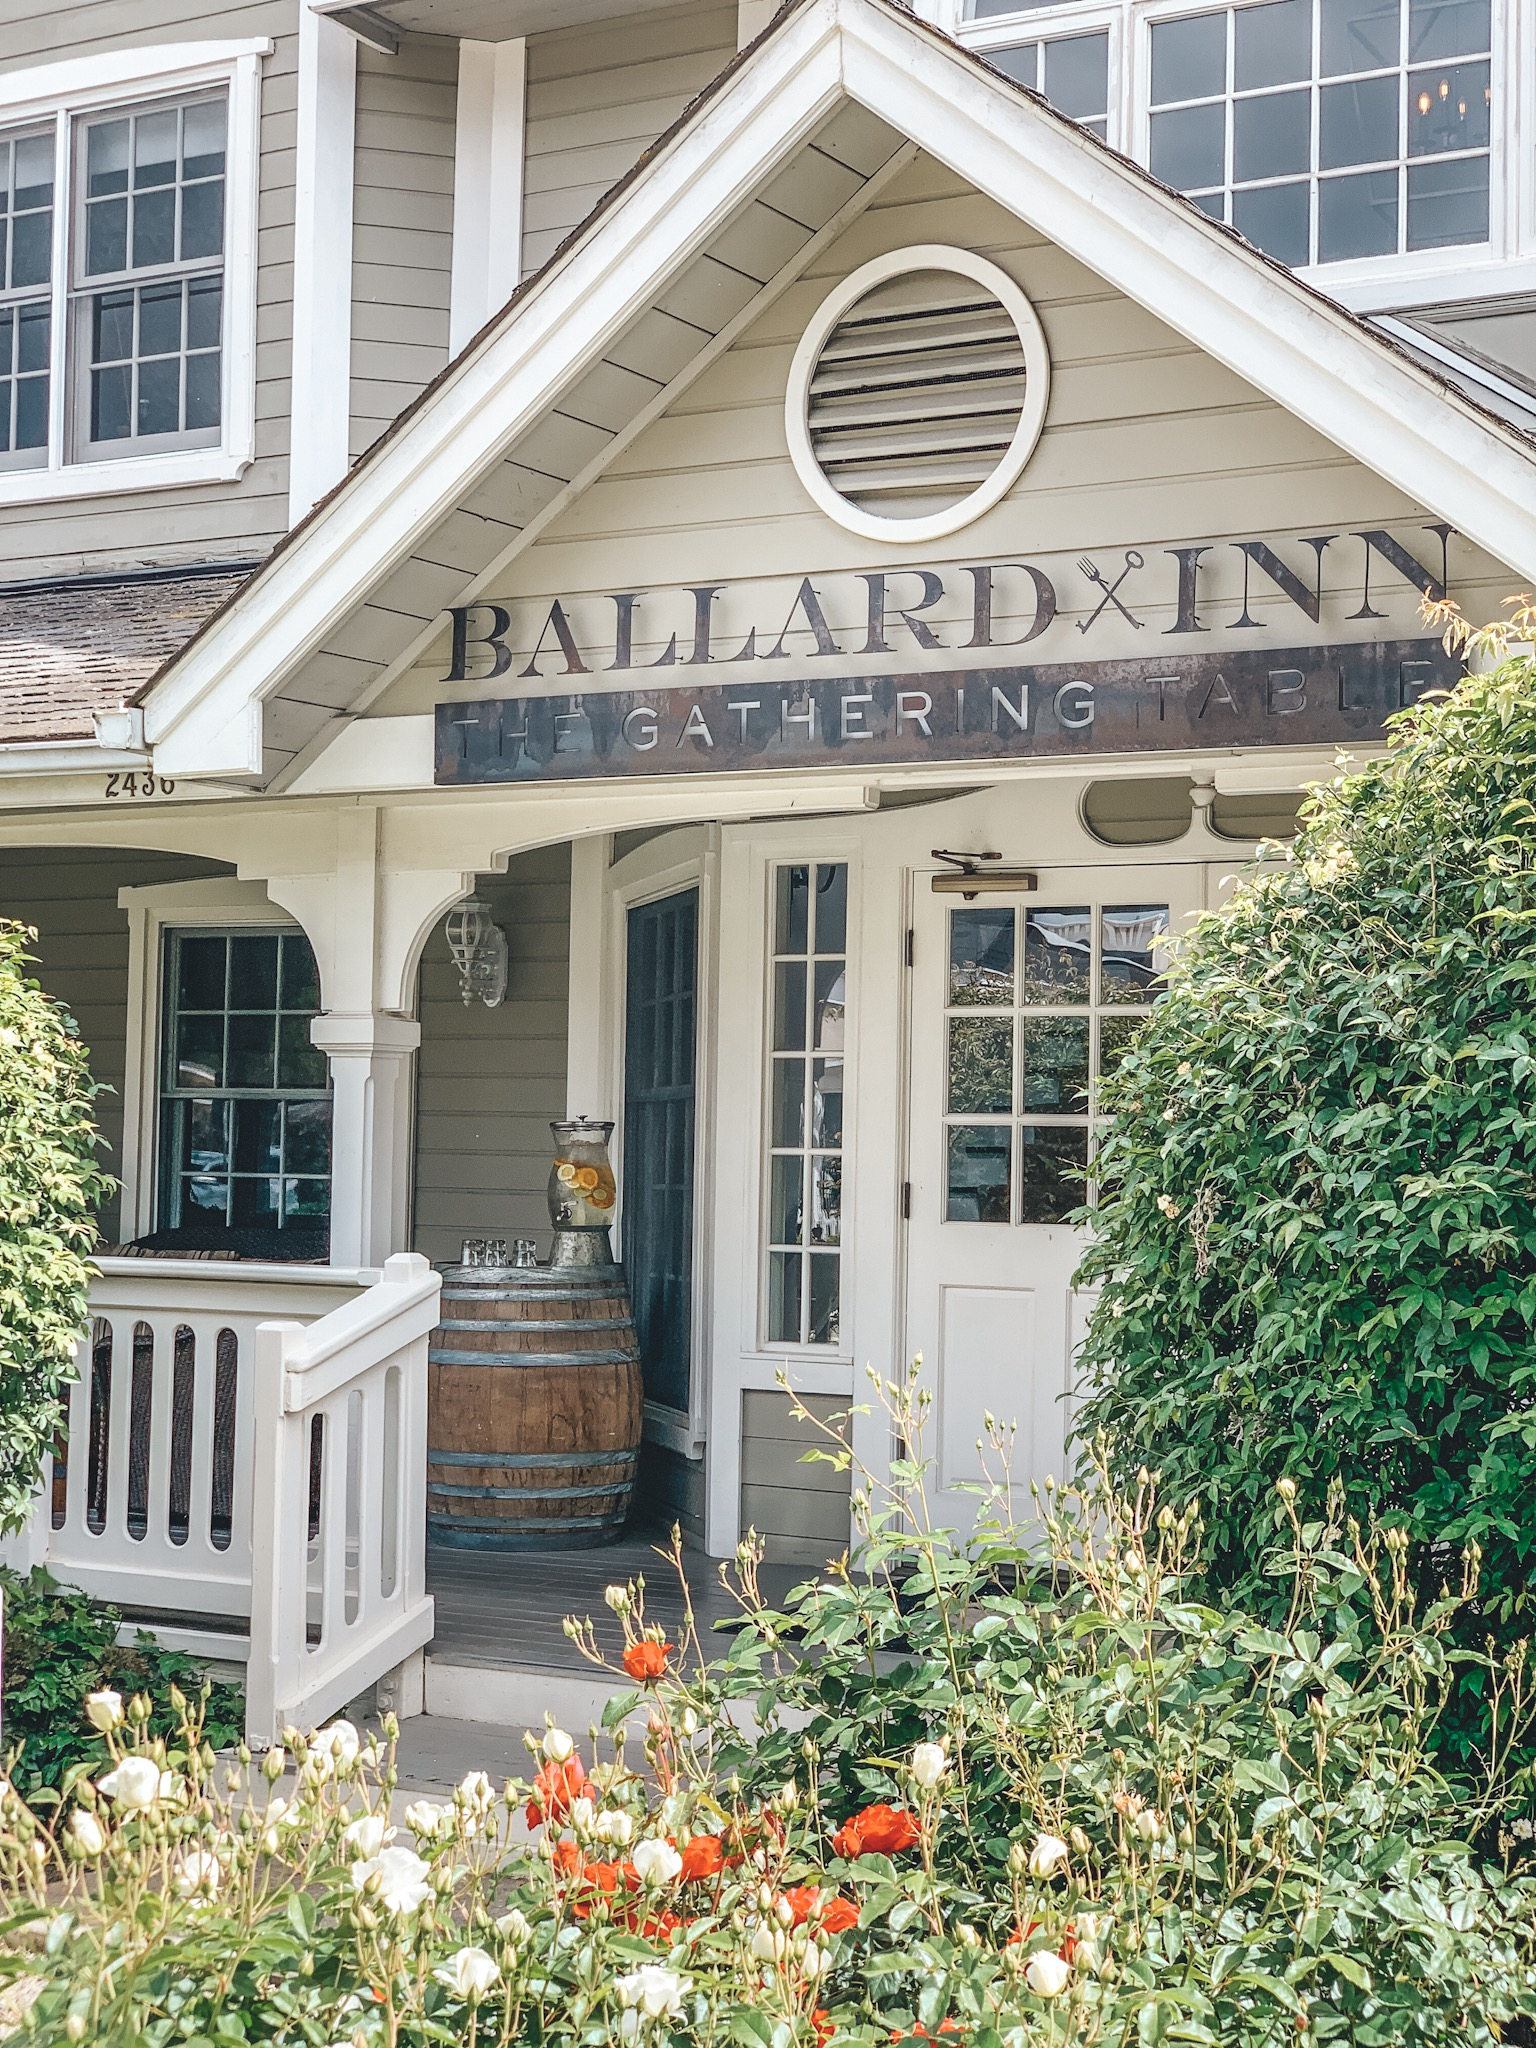 Ballard Inn and The Gathering Table | Santa Barbara Wine Country | Erika Beach